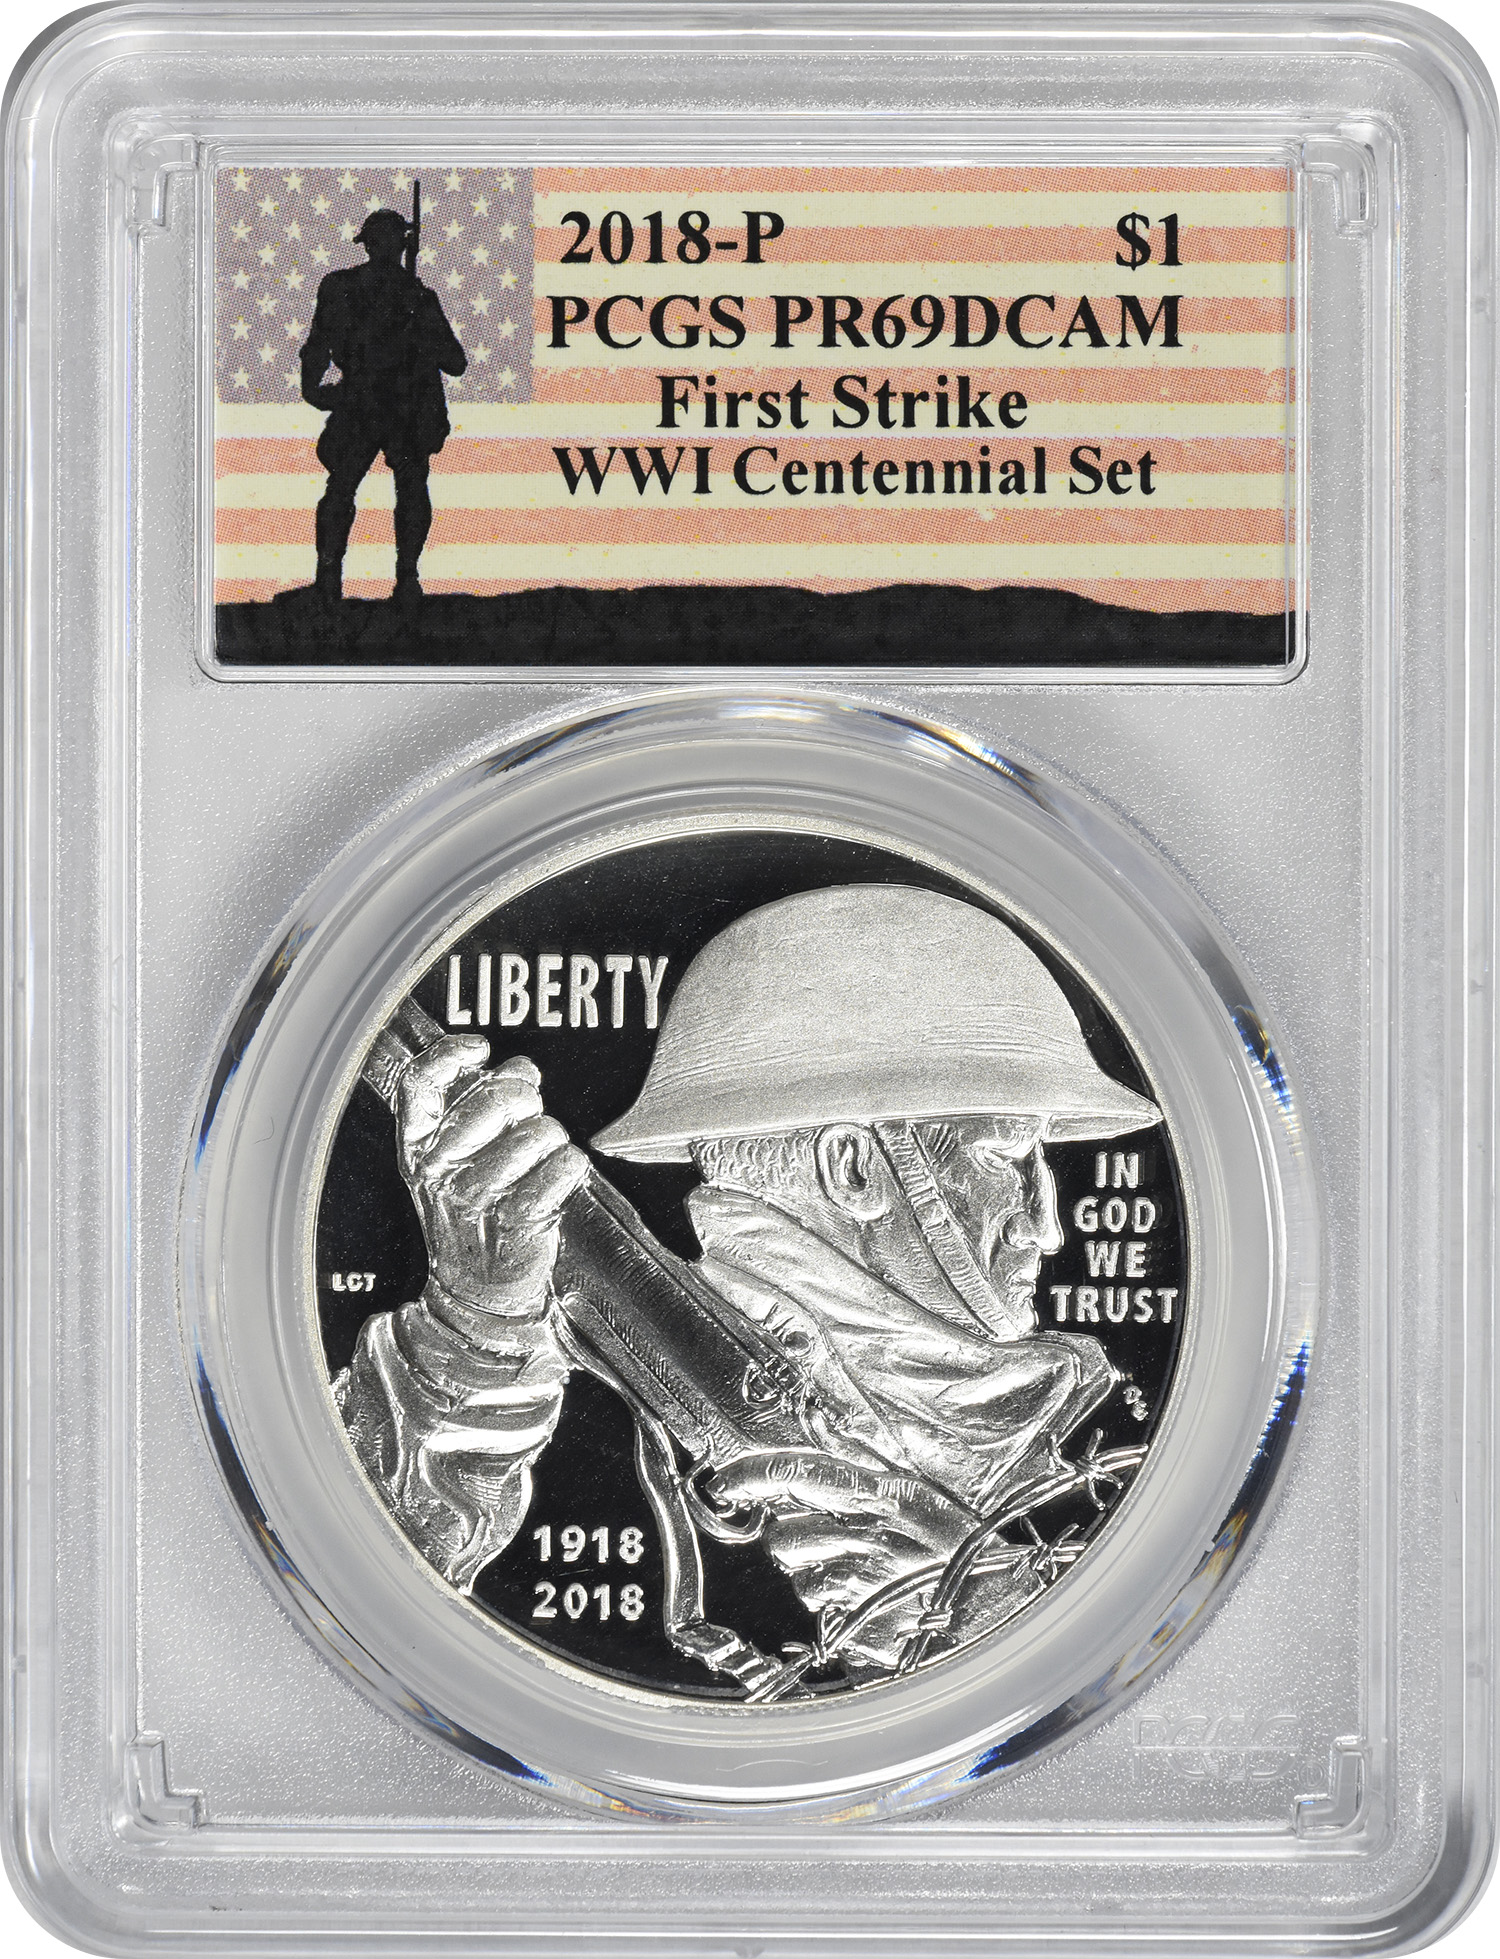 2018-P WWI Centennial Silver Commemorative Dollar (From Medal Set) PR69DCAM First Strike PCGS (WWI Label)